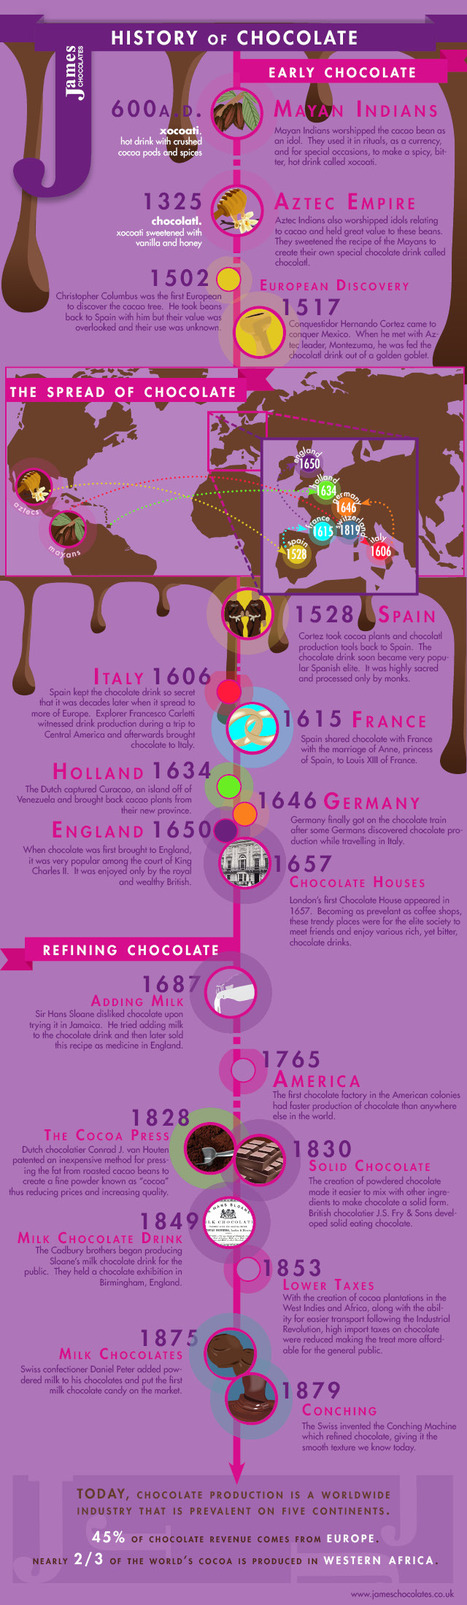 The History of Chocolate [INFOGRAPHIC]   Social media and education   Scoop.it